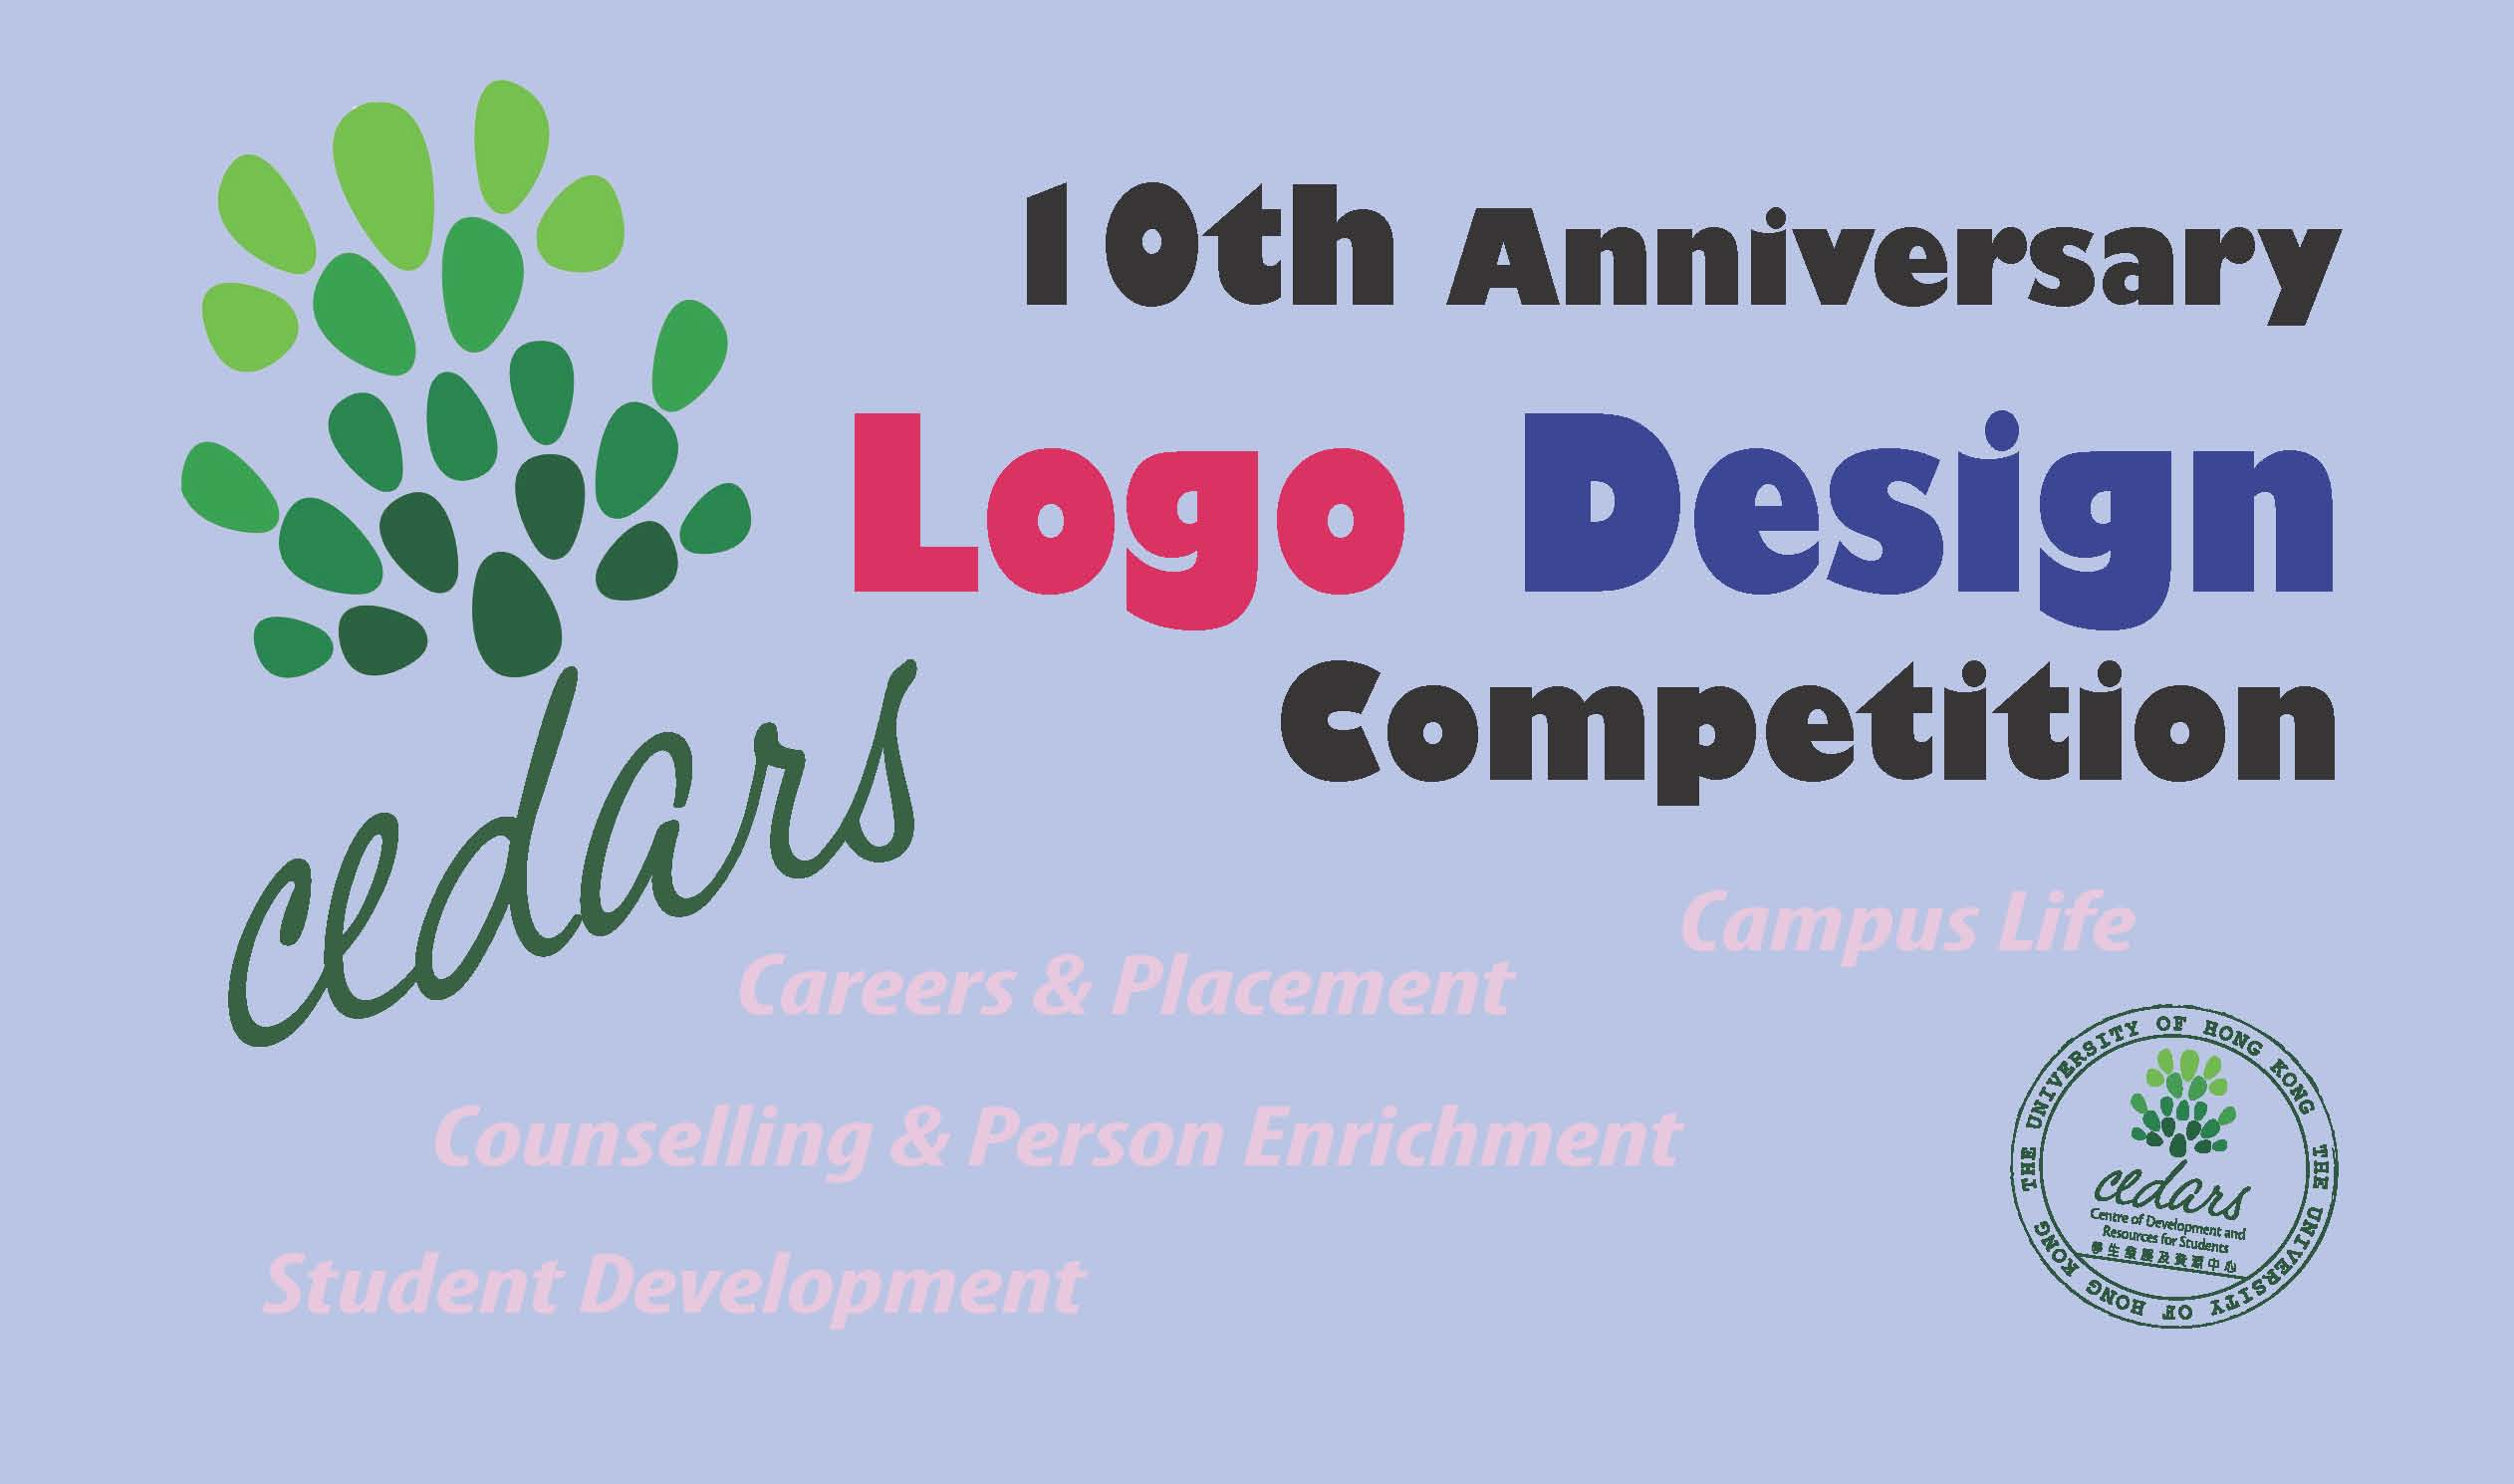 CEDARS 10th Anniversary logo competition of CEDARS